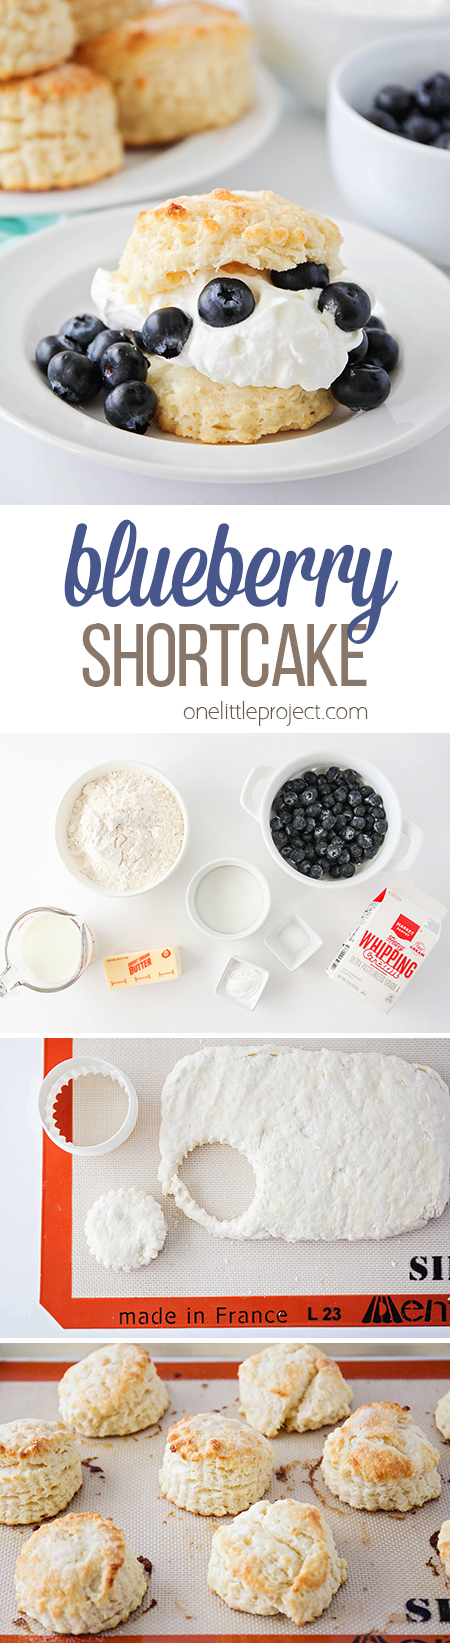 This simple blueberry shortcake is quick and easy to make, and has a delicious and tender biscuit base. Add some freshly whipped cream and fresh blueberries for the perfect summer dessert!